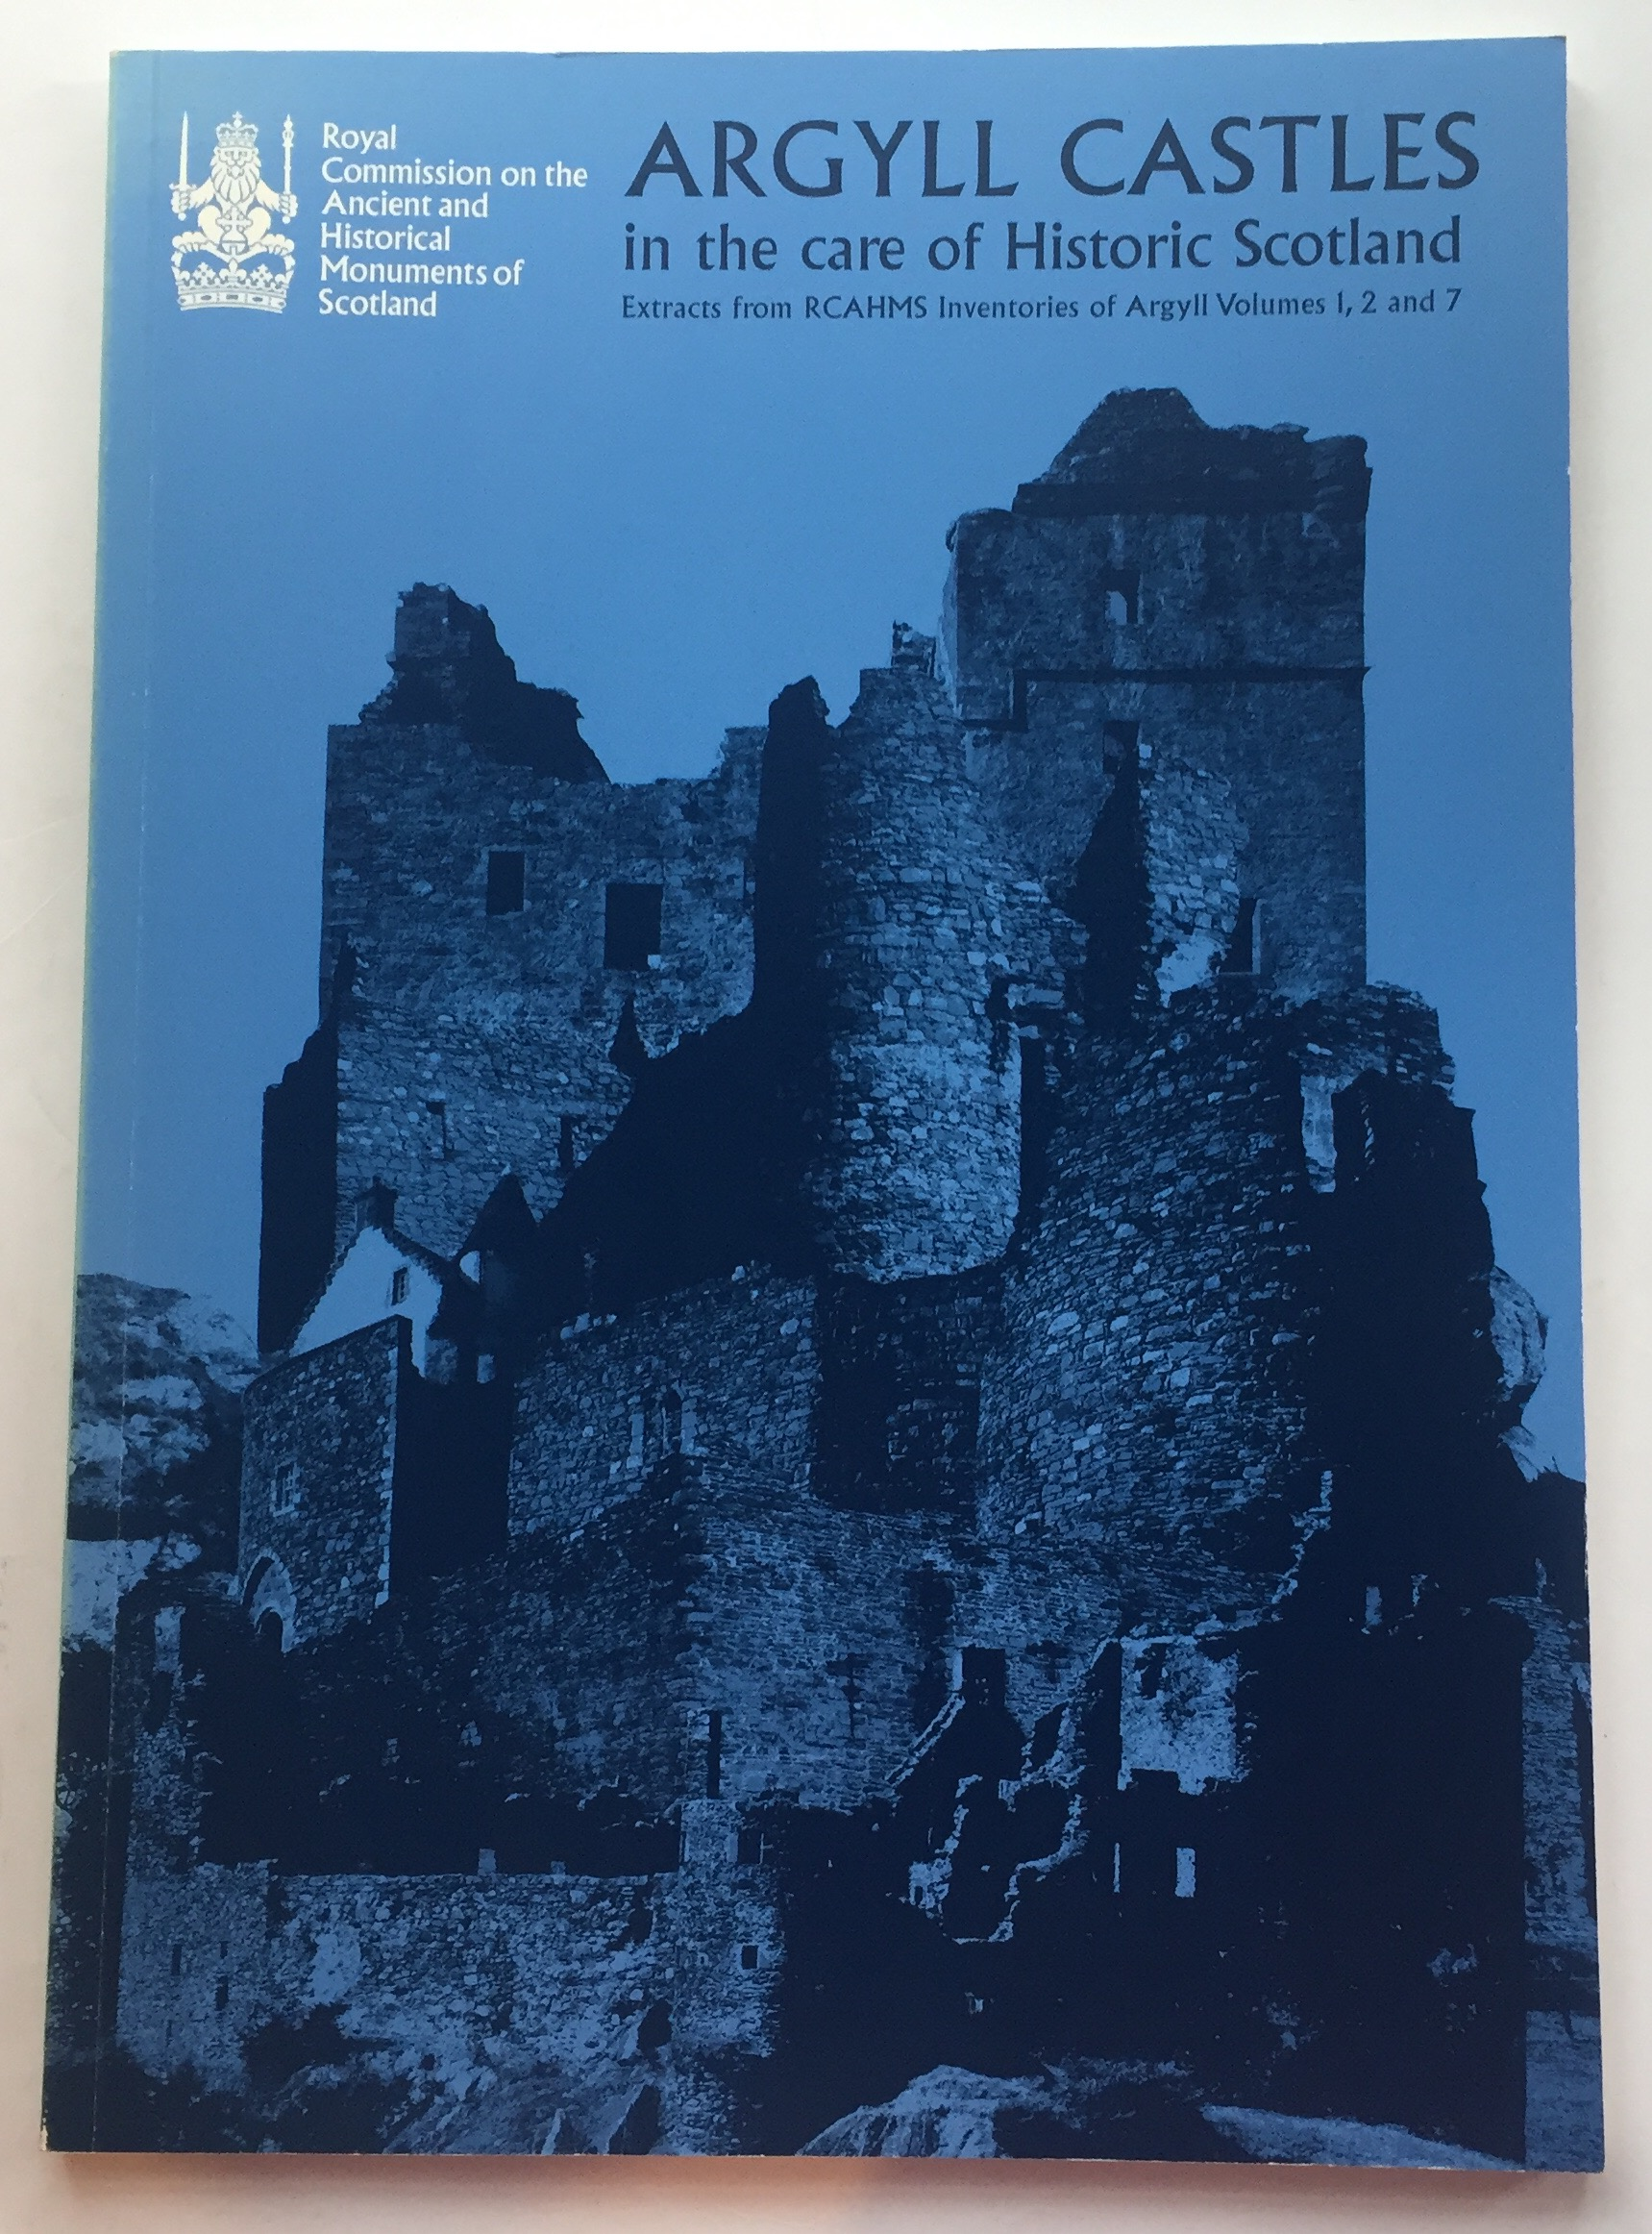 Argyll Castles in the care of Historic Scotland :Extracts from RCAHMS Inventories of Argyll Volumes 1, 2 and 7, Royal Commission on the Ancient and Historical Monuments of Scotland ;